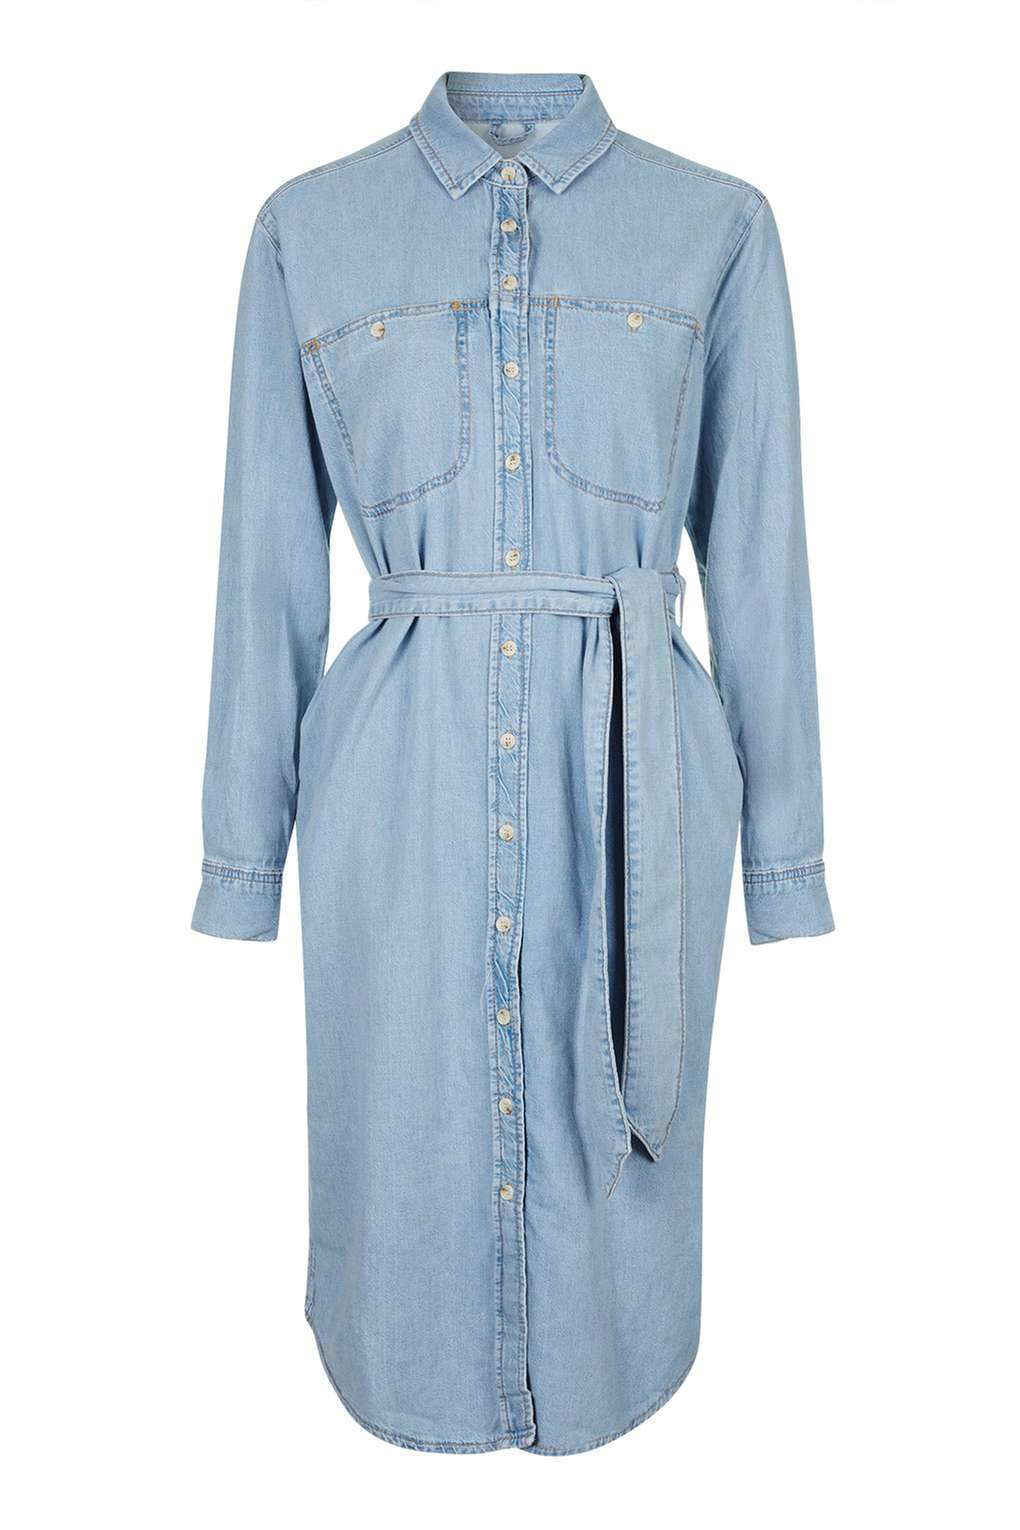 Topshop moto midi shirt dress in blue lyst for Womens denim shirts topshop